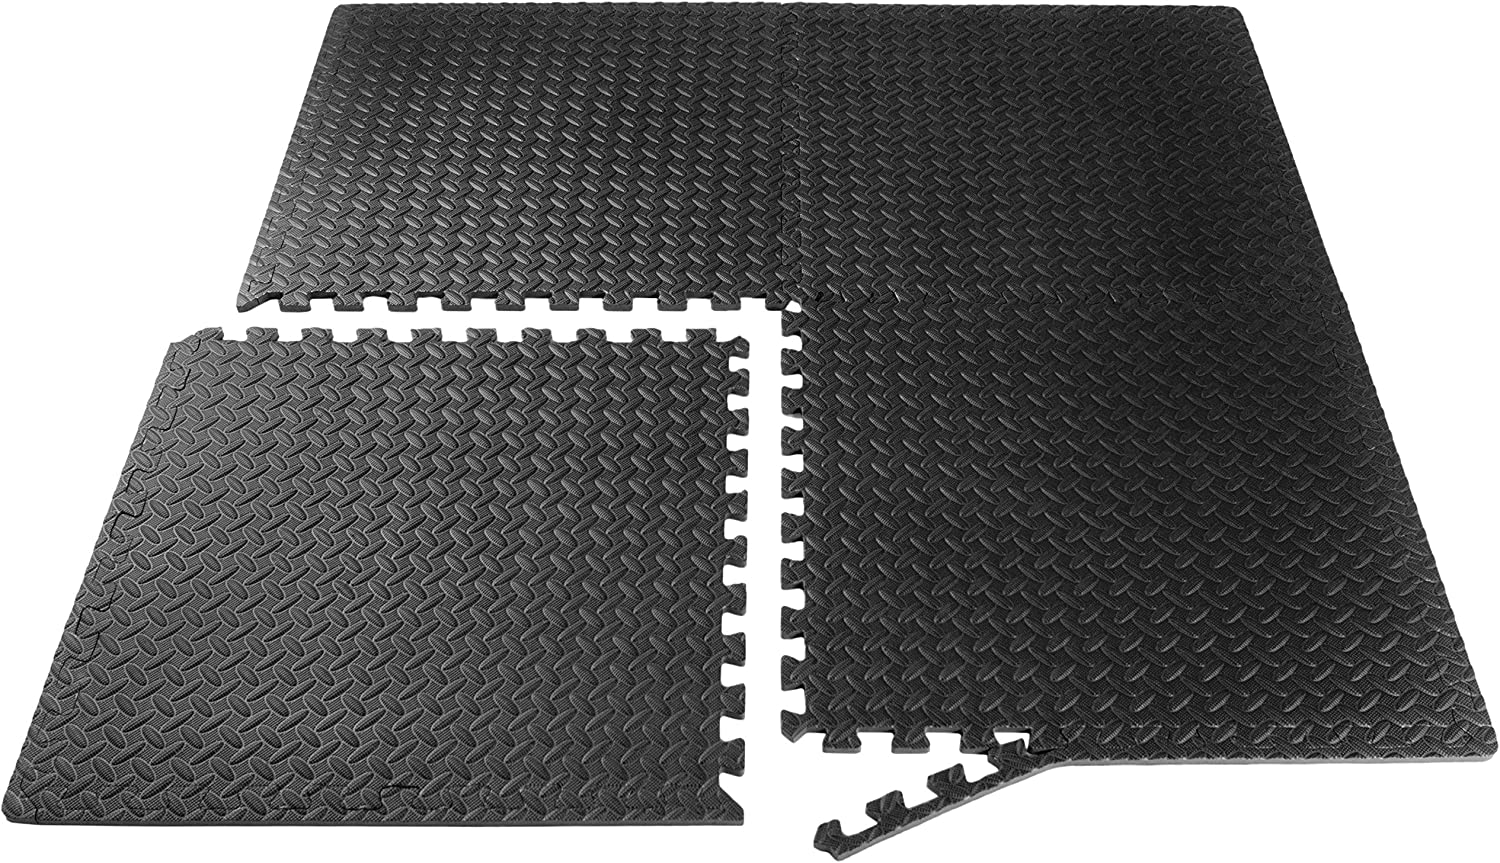 ProSource fs-1908-pzzl Puzzle Exercise Mat EVA Foam Interlocking Tiles (Black, 24 Square Feet) : Sports & Outdoors